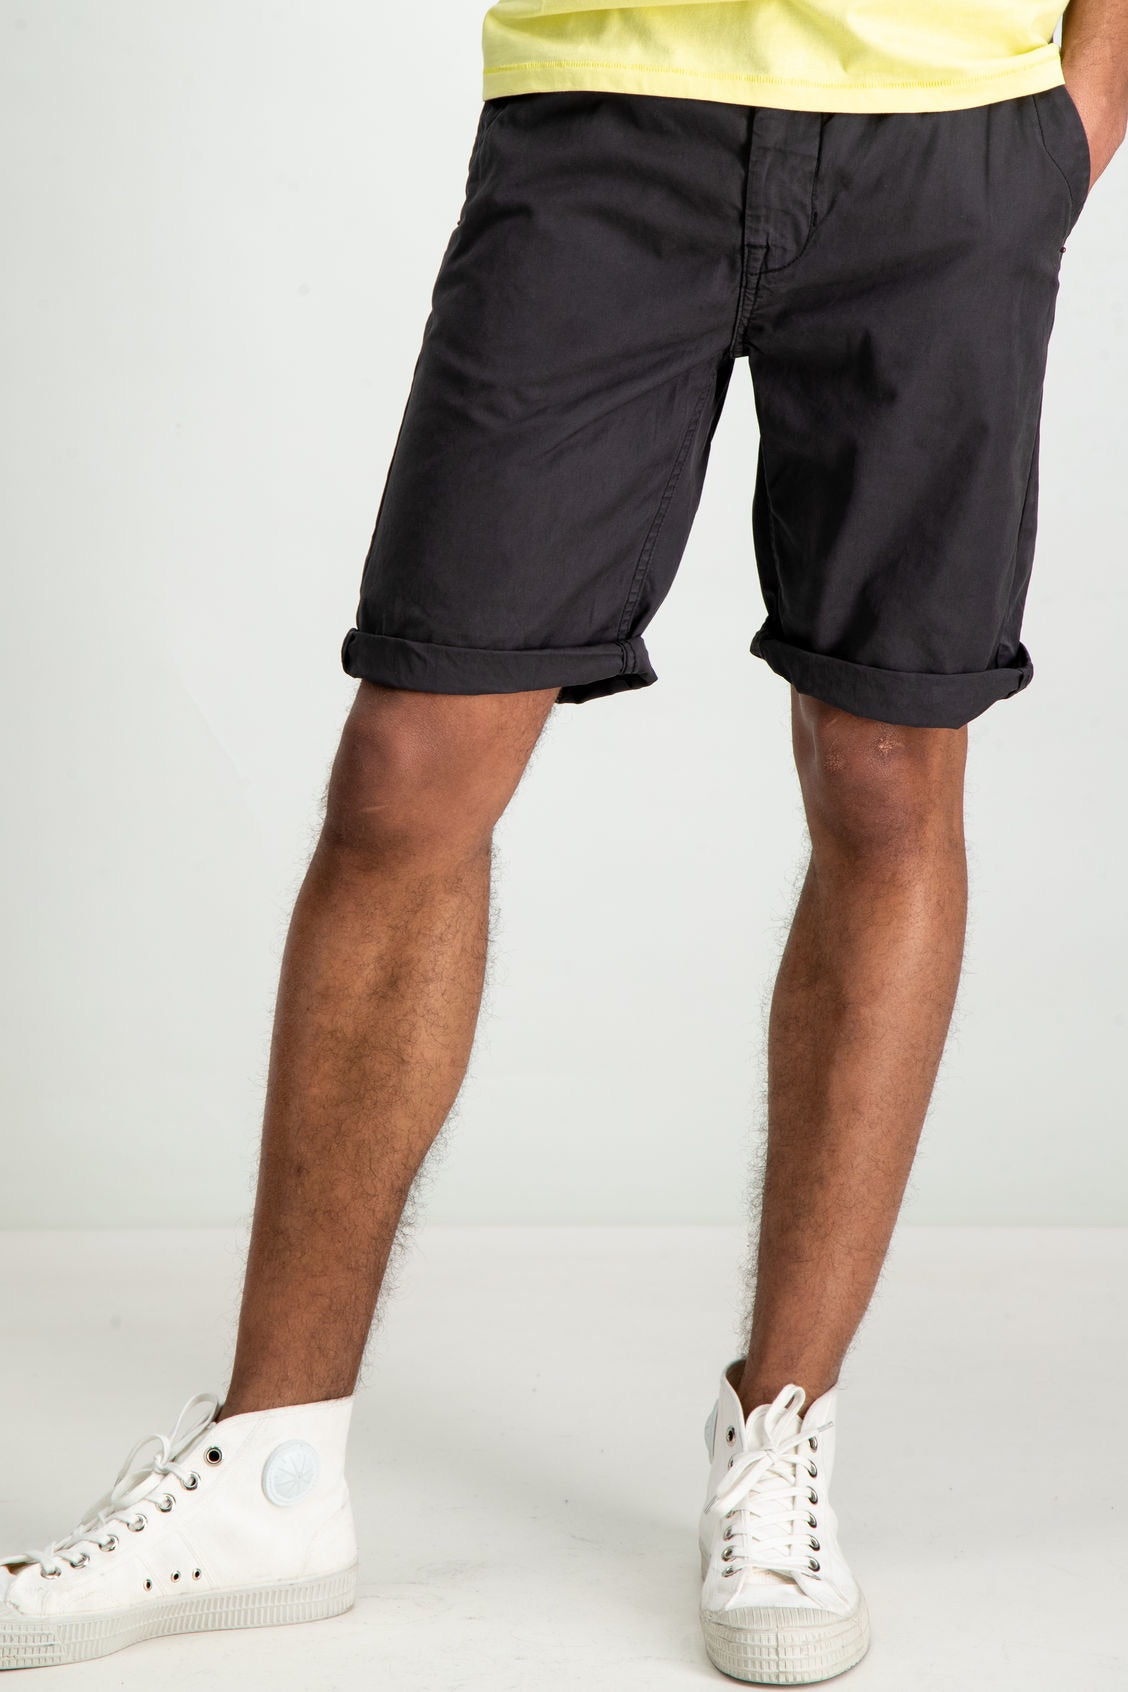 Garcia SANTO Shade Shorts - LAST PAIR!